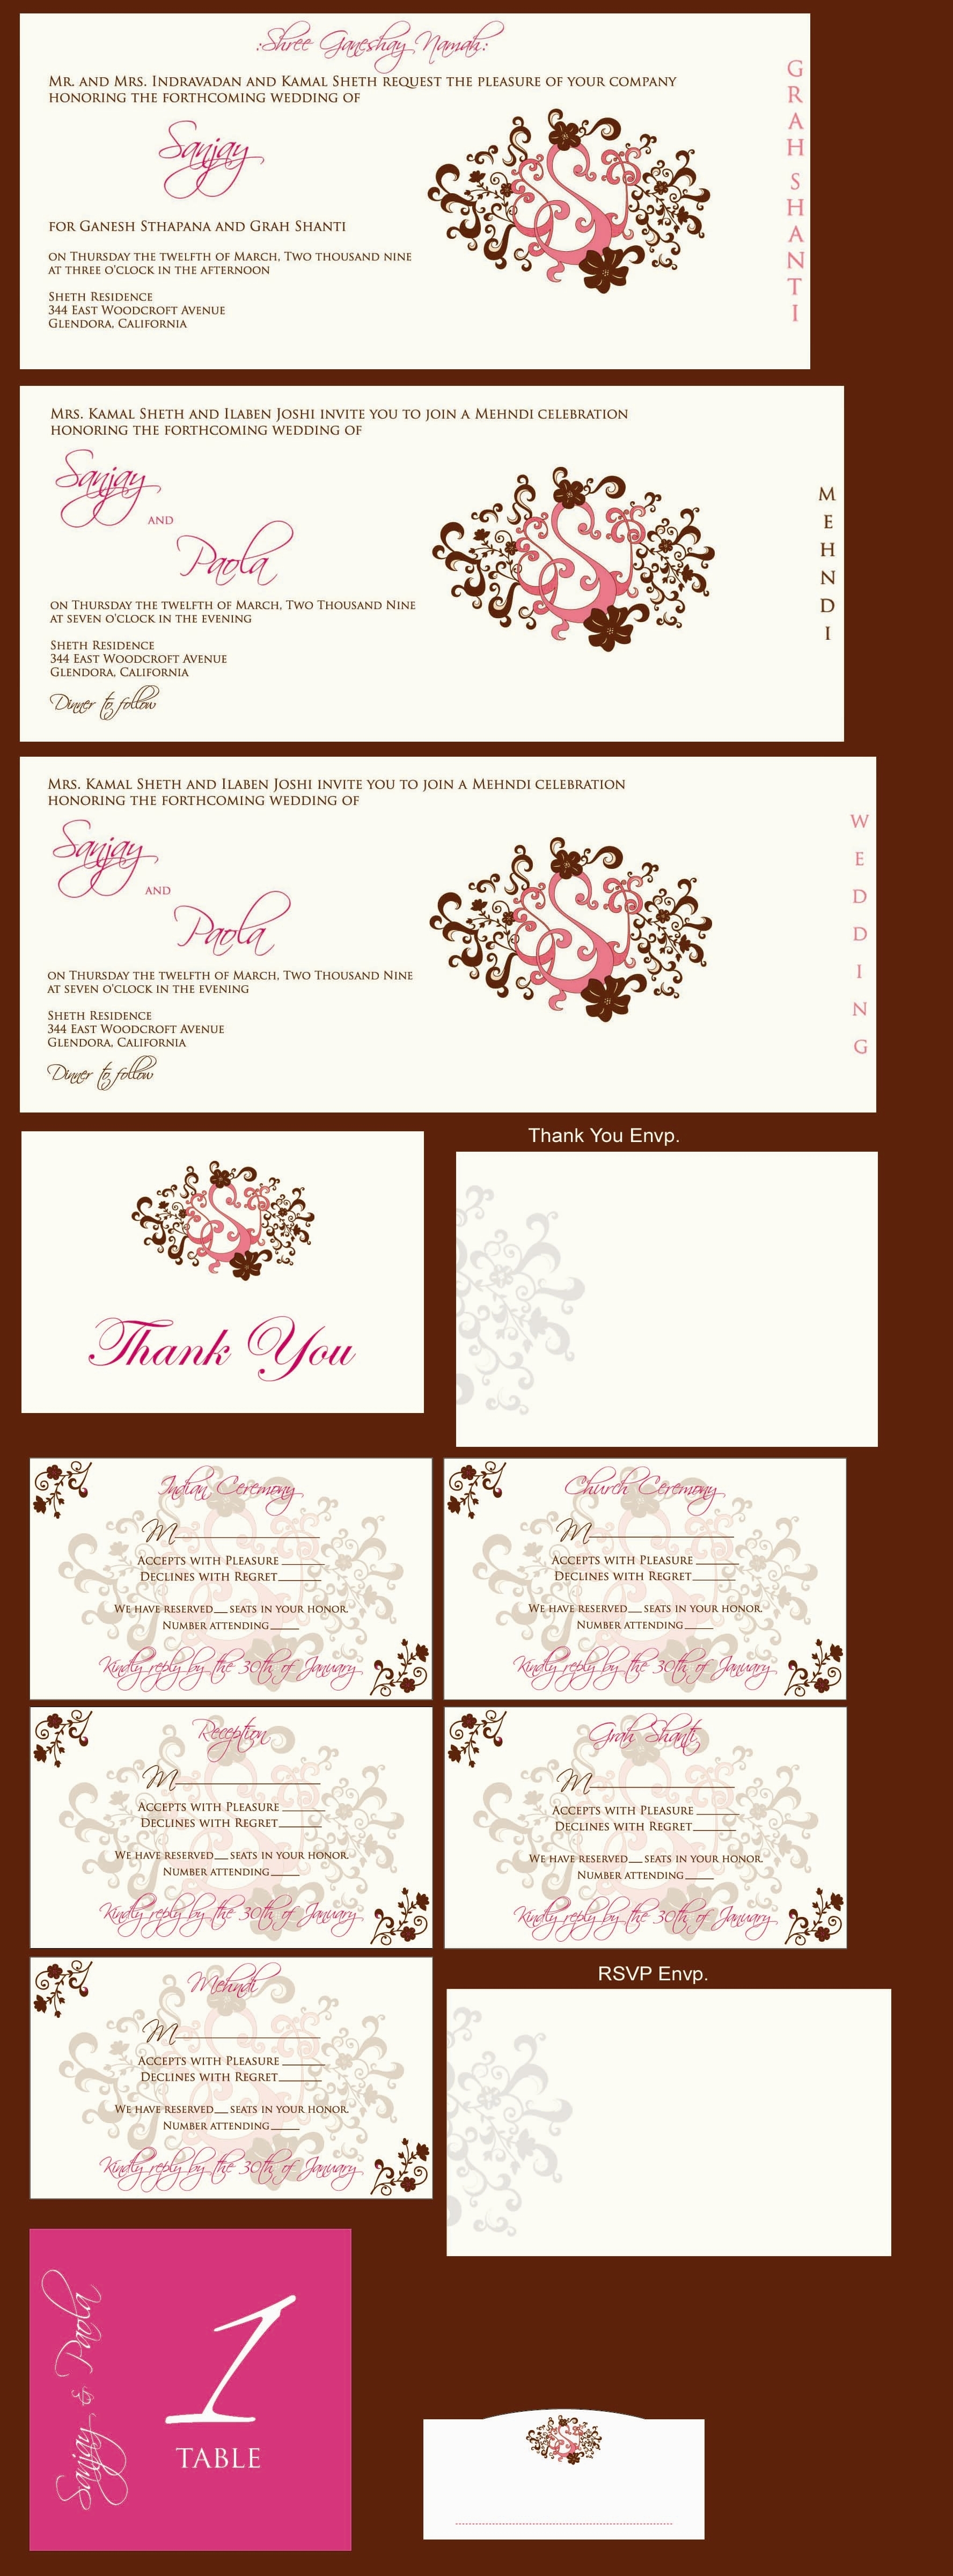 Stationery, invitation, Invitations, 1, Mock